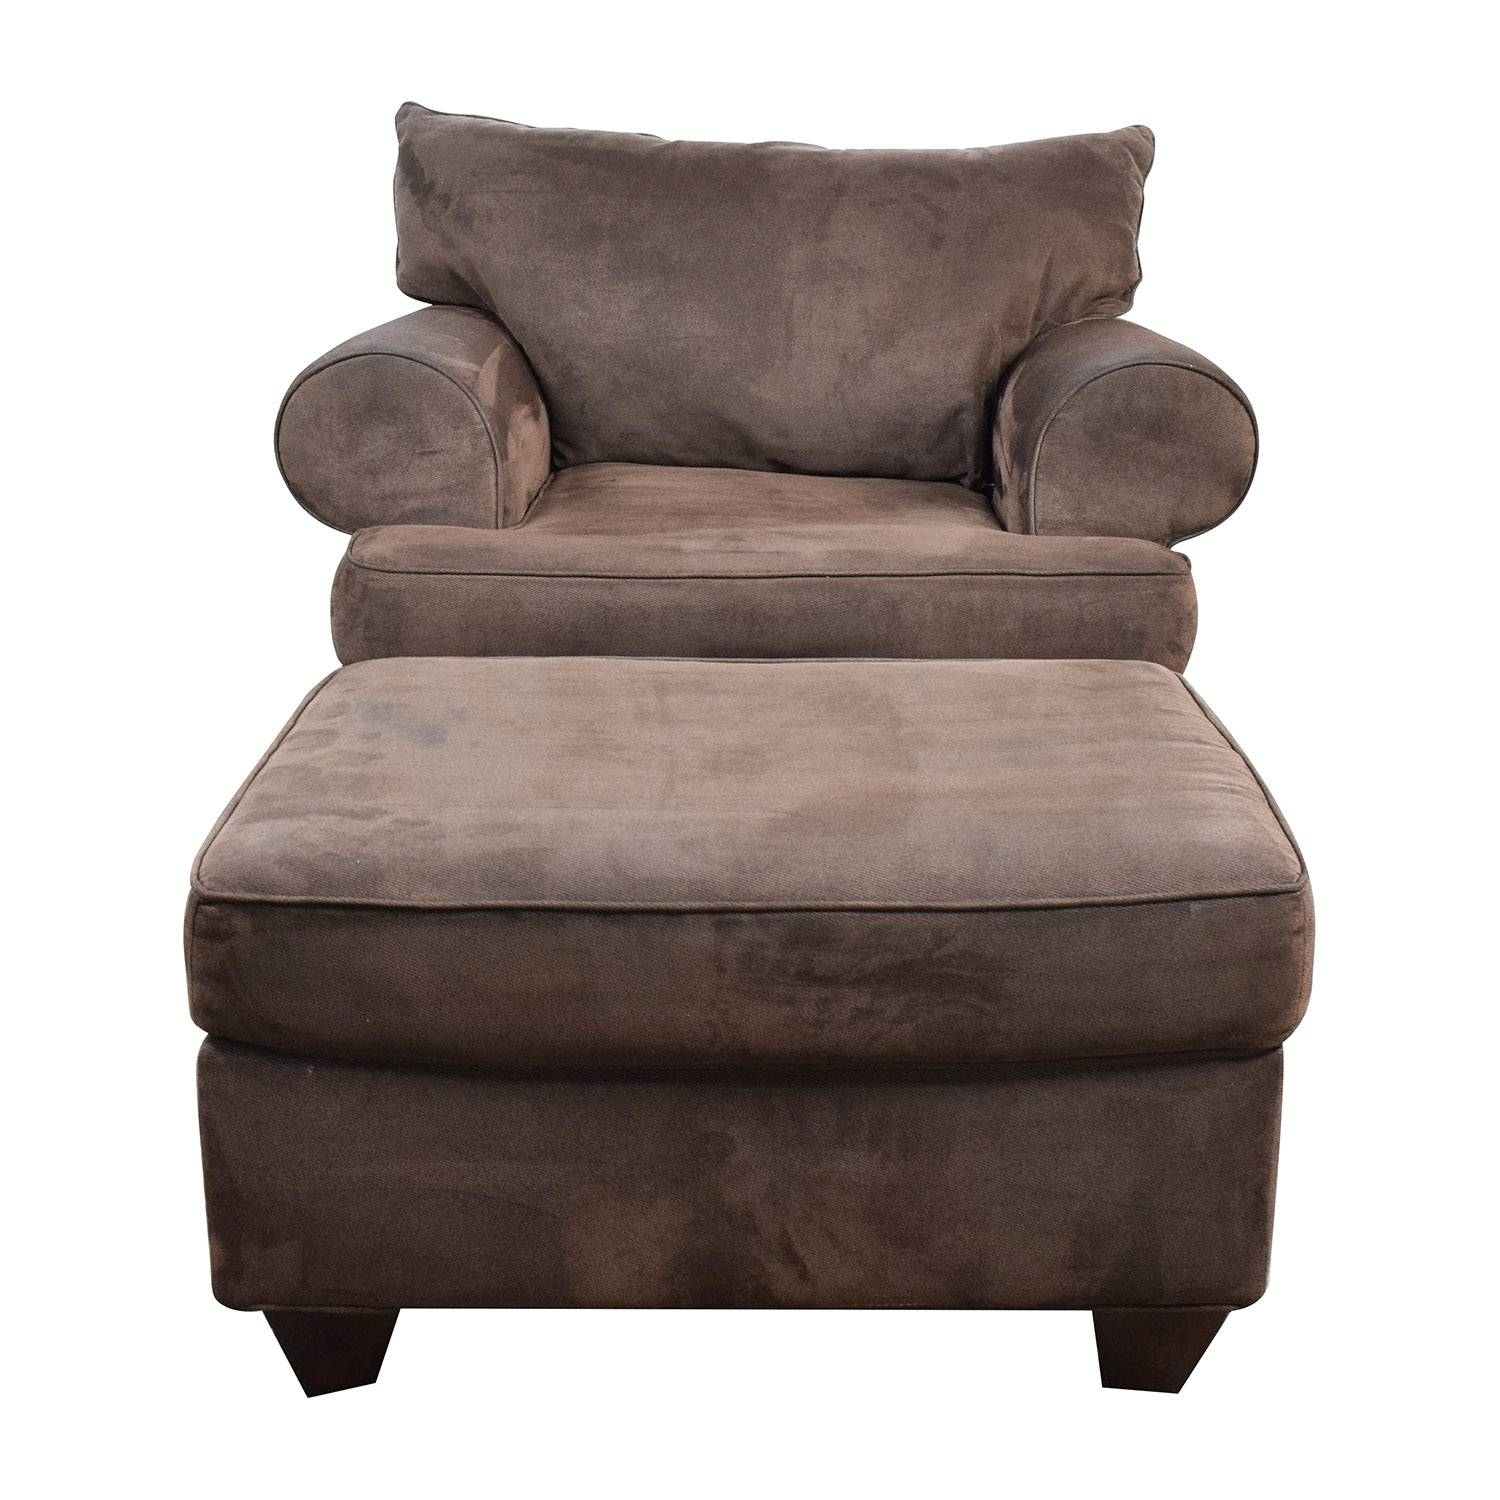 67% Off - Dark Brown Sofa Chair With Ottoman / Chairs with regard to Sofa Chairs (Image 7 of 30)